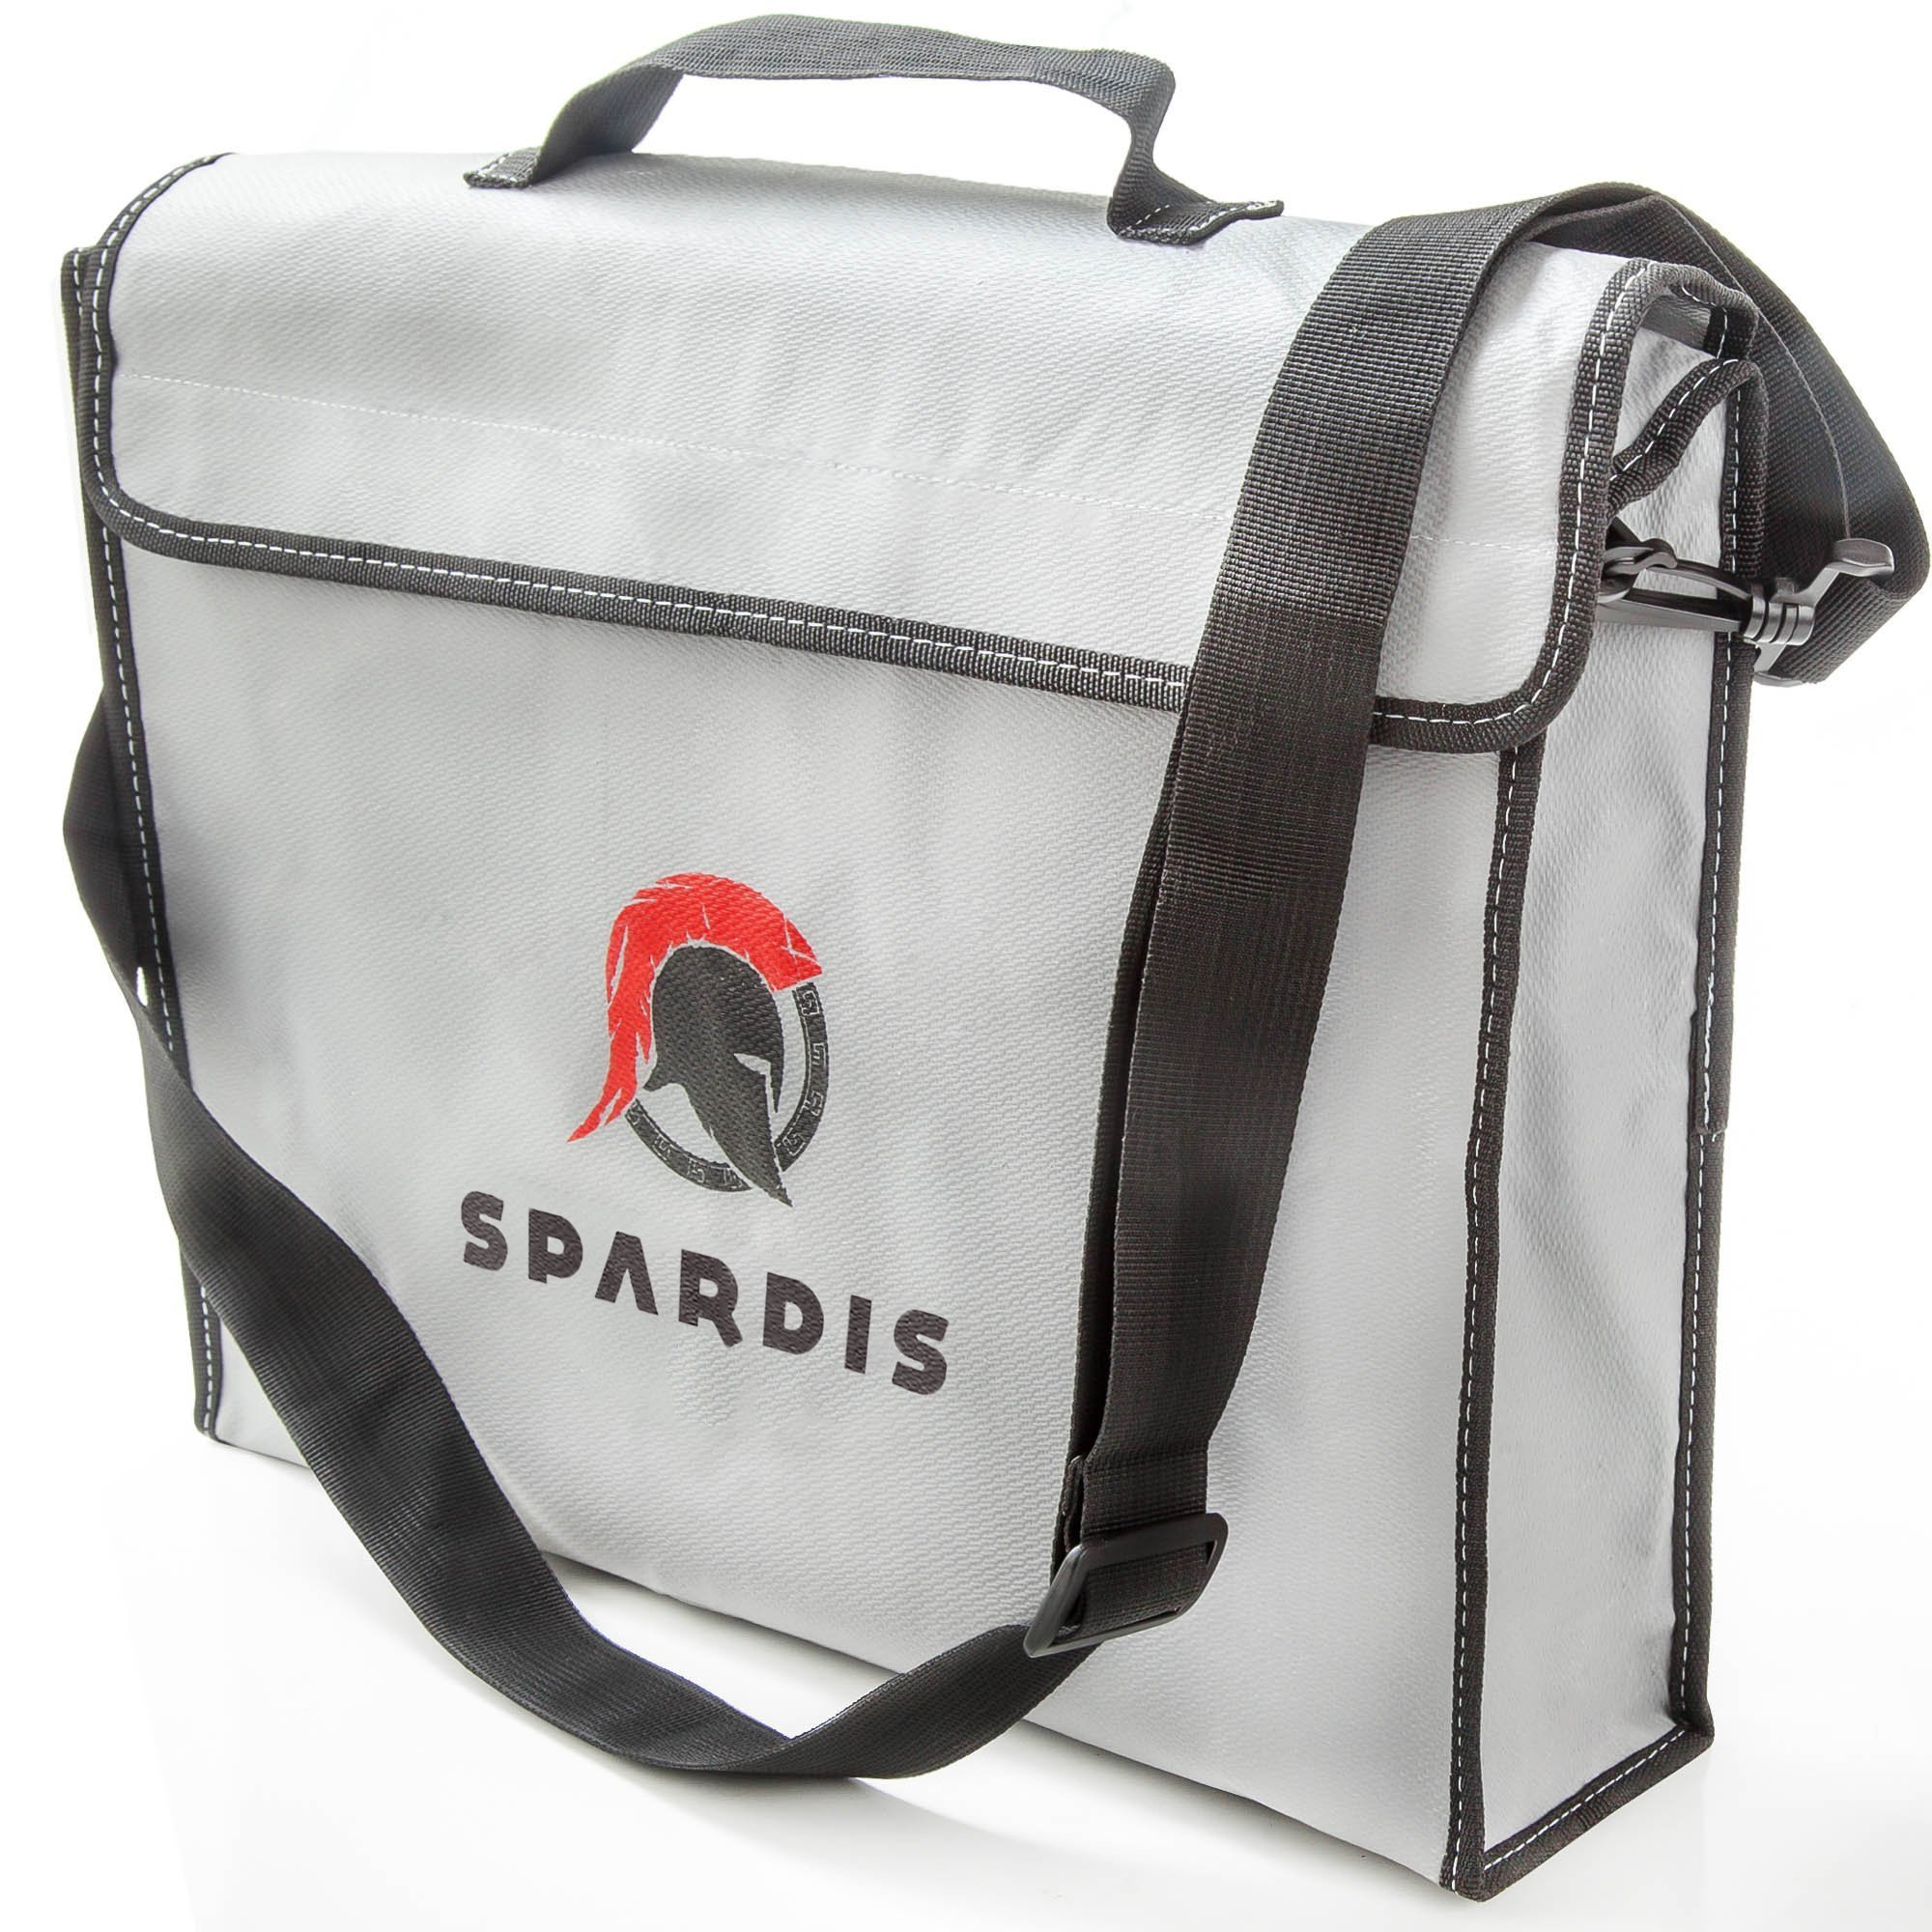 Spardis XXL Fireproof Document Bag (16''x3.5''12'') Dual Layer Fire Resistant Lipo Bag w/ Handle, Shoulder Strap, Heat-Proof Aluminum, No-Itch Silicone Coated Fiberglass & Heavy-duty Zipper